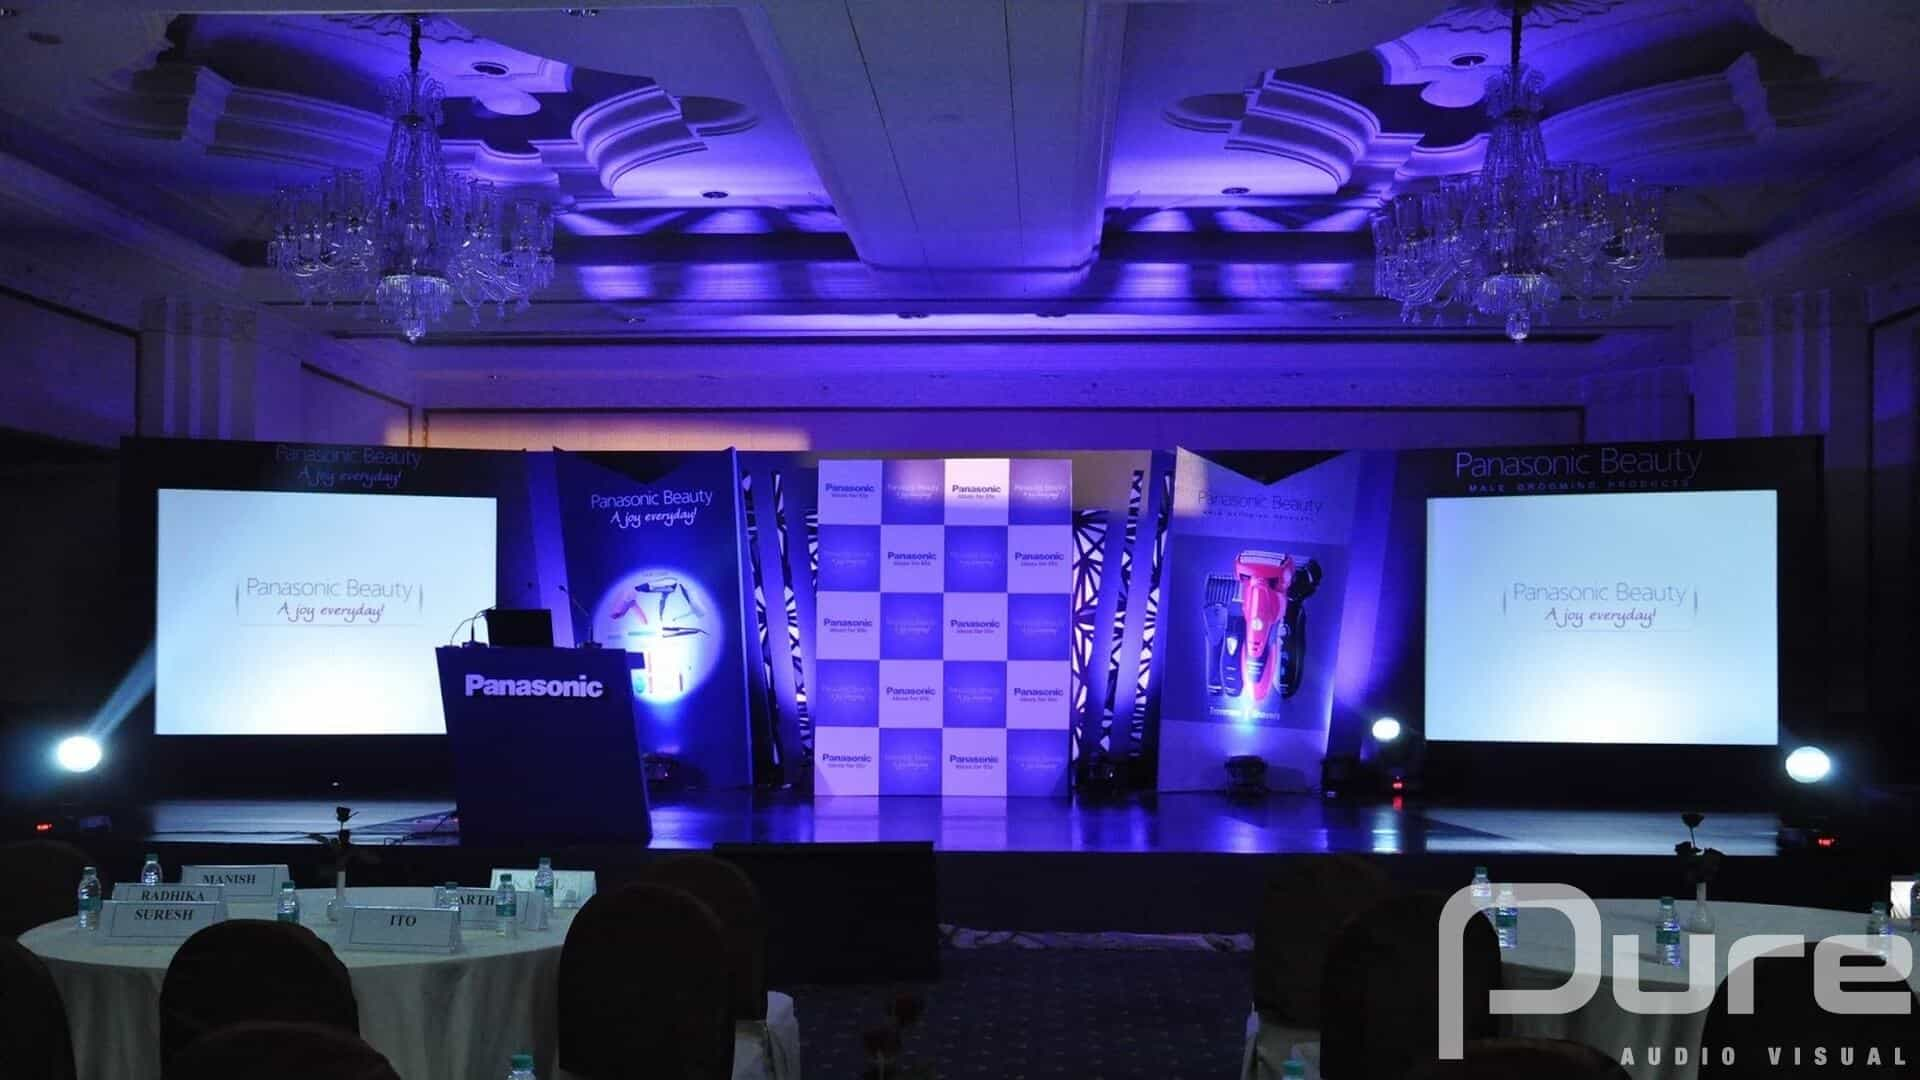 Conference, AV Company, Audio Visual, Lighting, Staging, Projectors